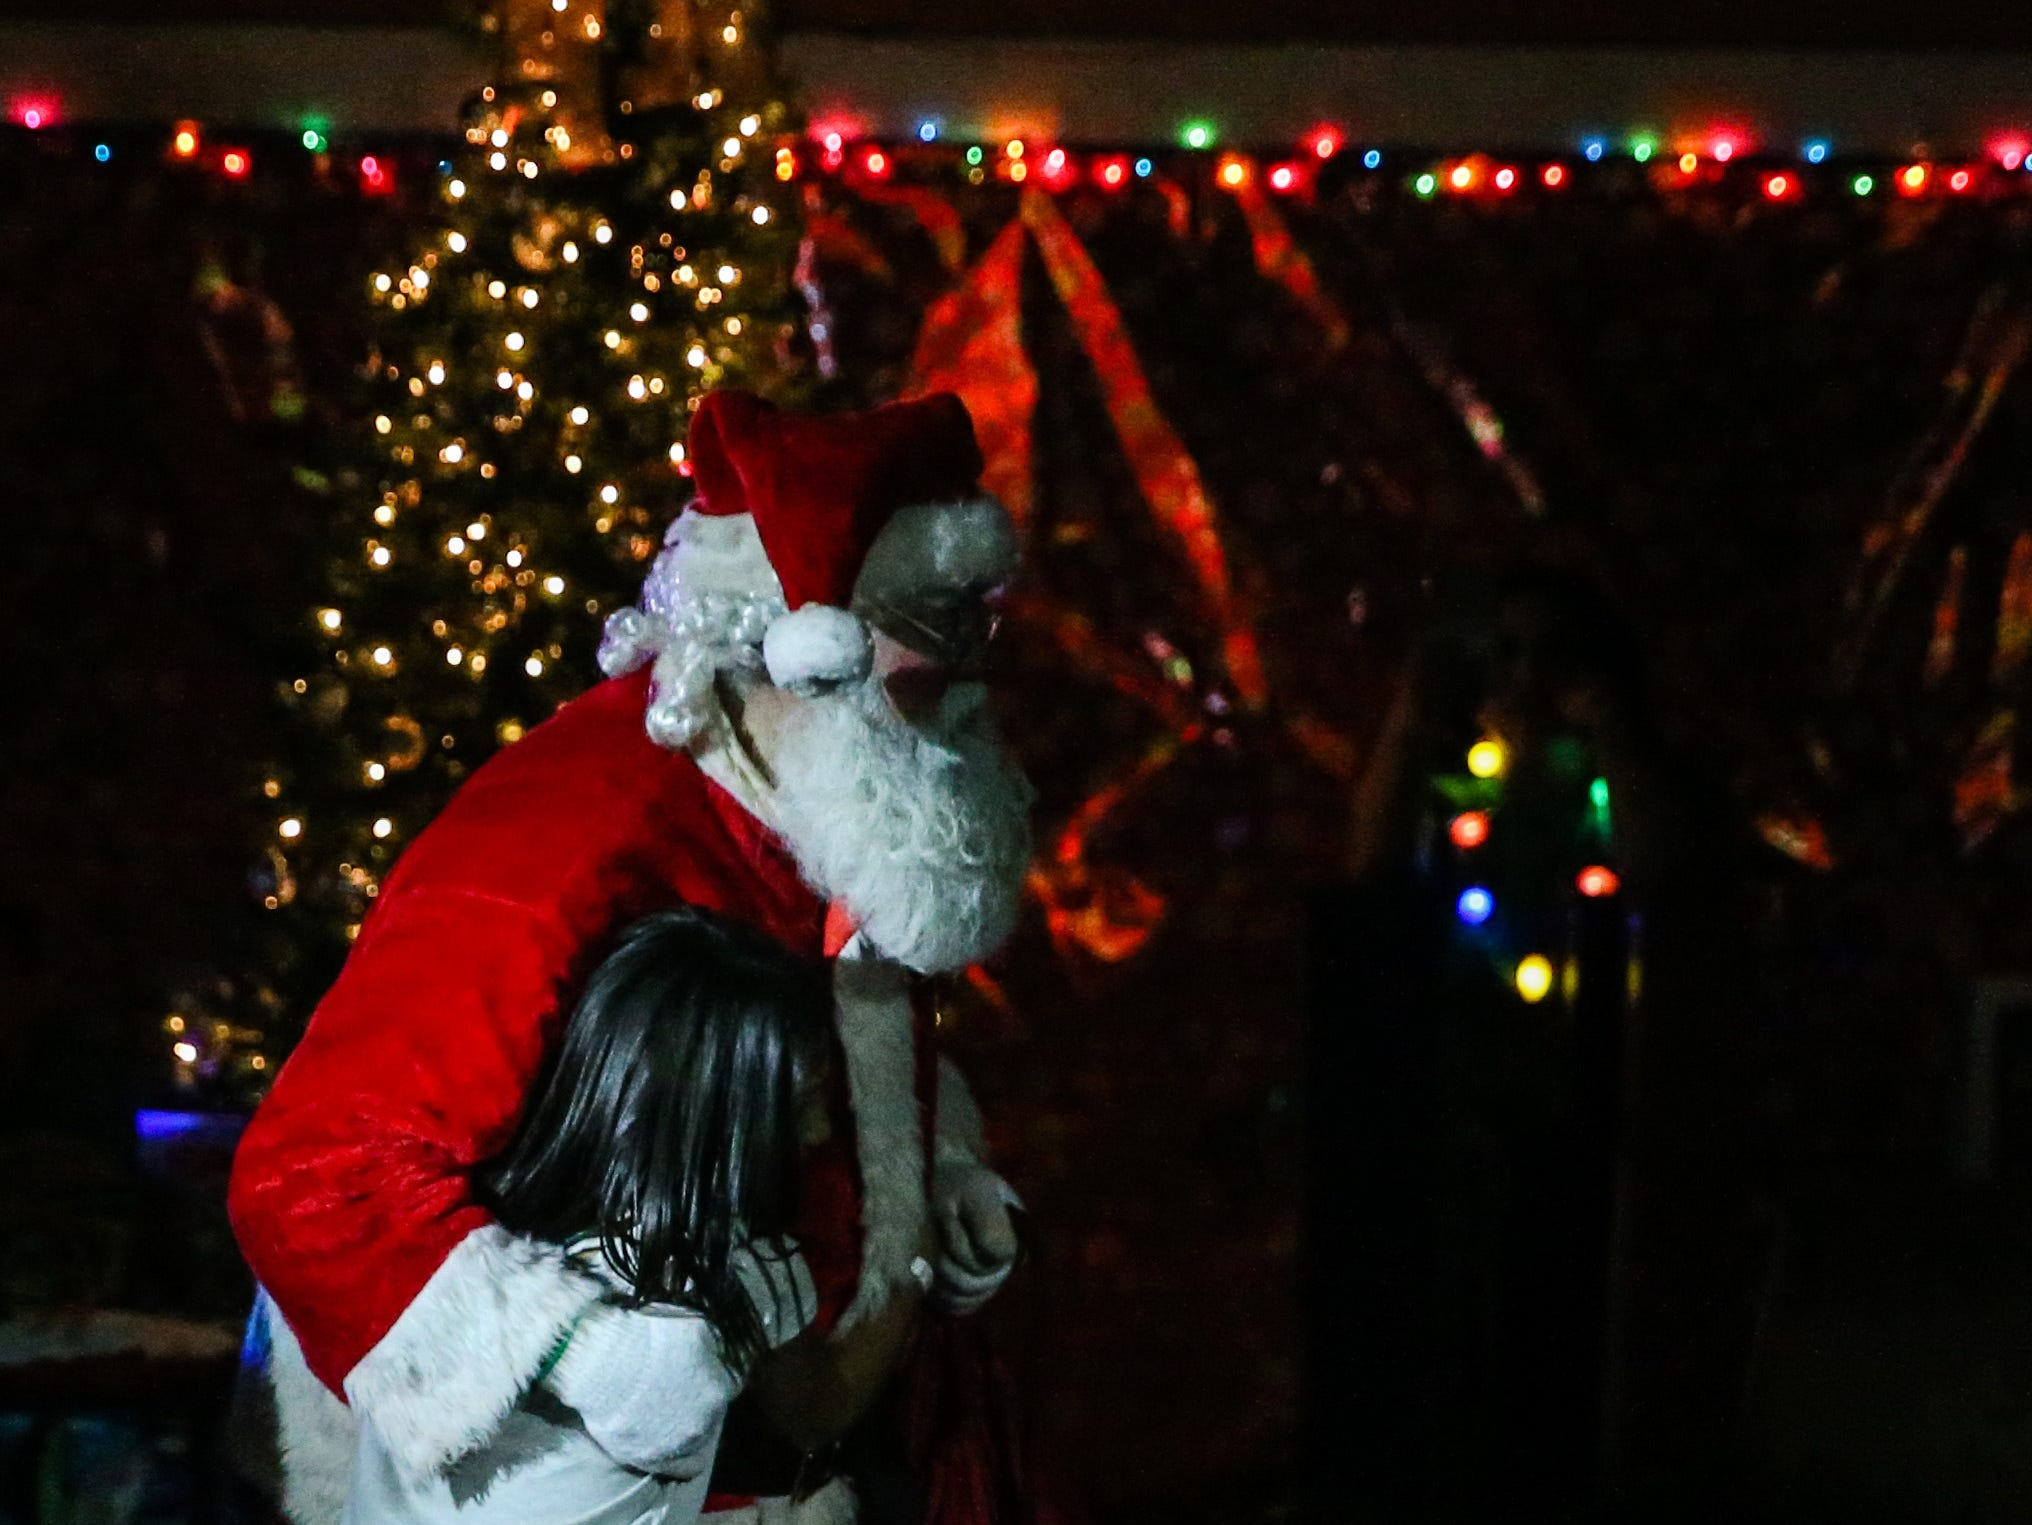 Santa is hugged by a girl as he makes his way through the crowd at the In the Spirit of Christmas party Saturday, Dec. 15, 2018, at the Southside Recreation Center.